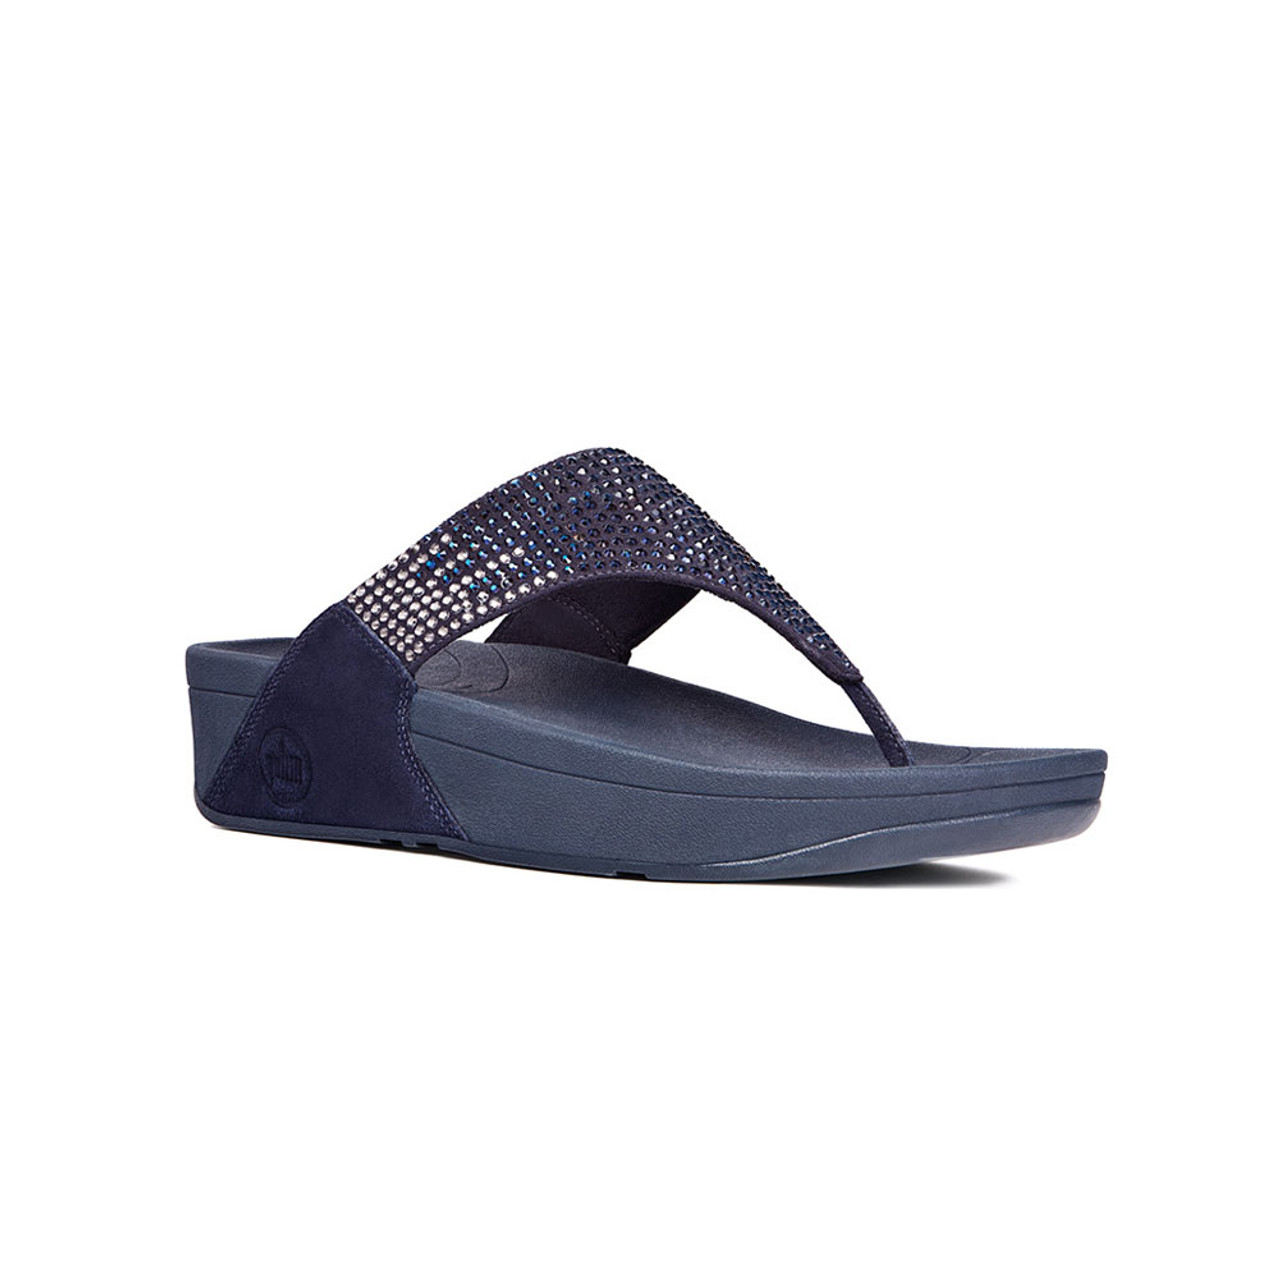 0db297ad3b2cc6 Fitflop Women s Flare Thong Supernavy - Shop now   Shoolu.com